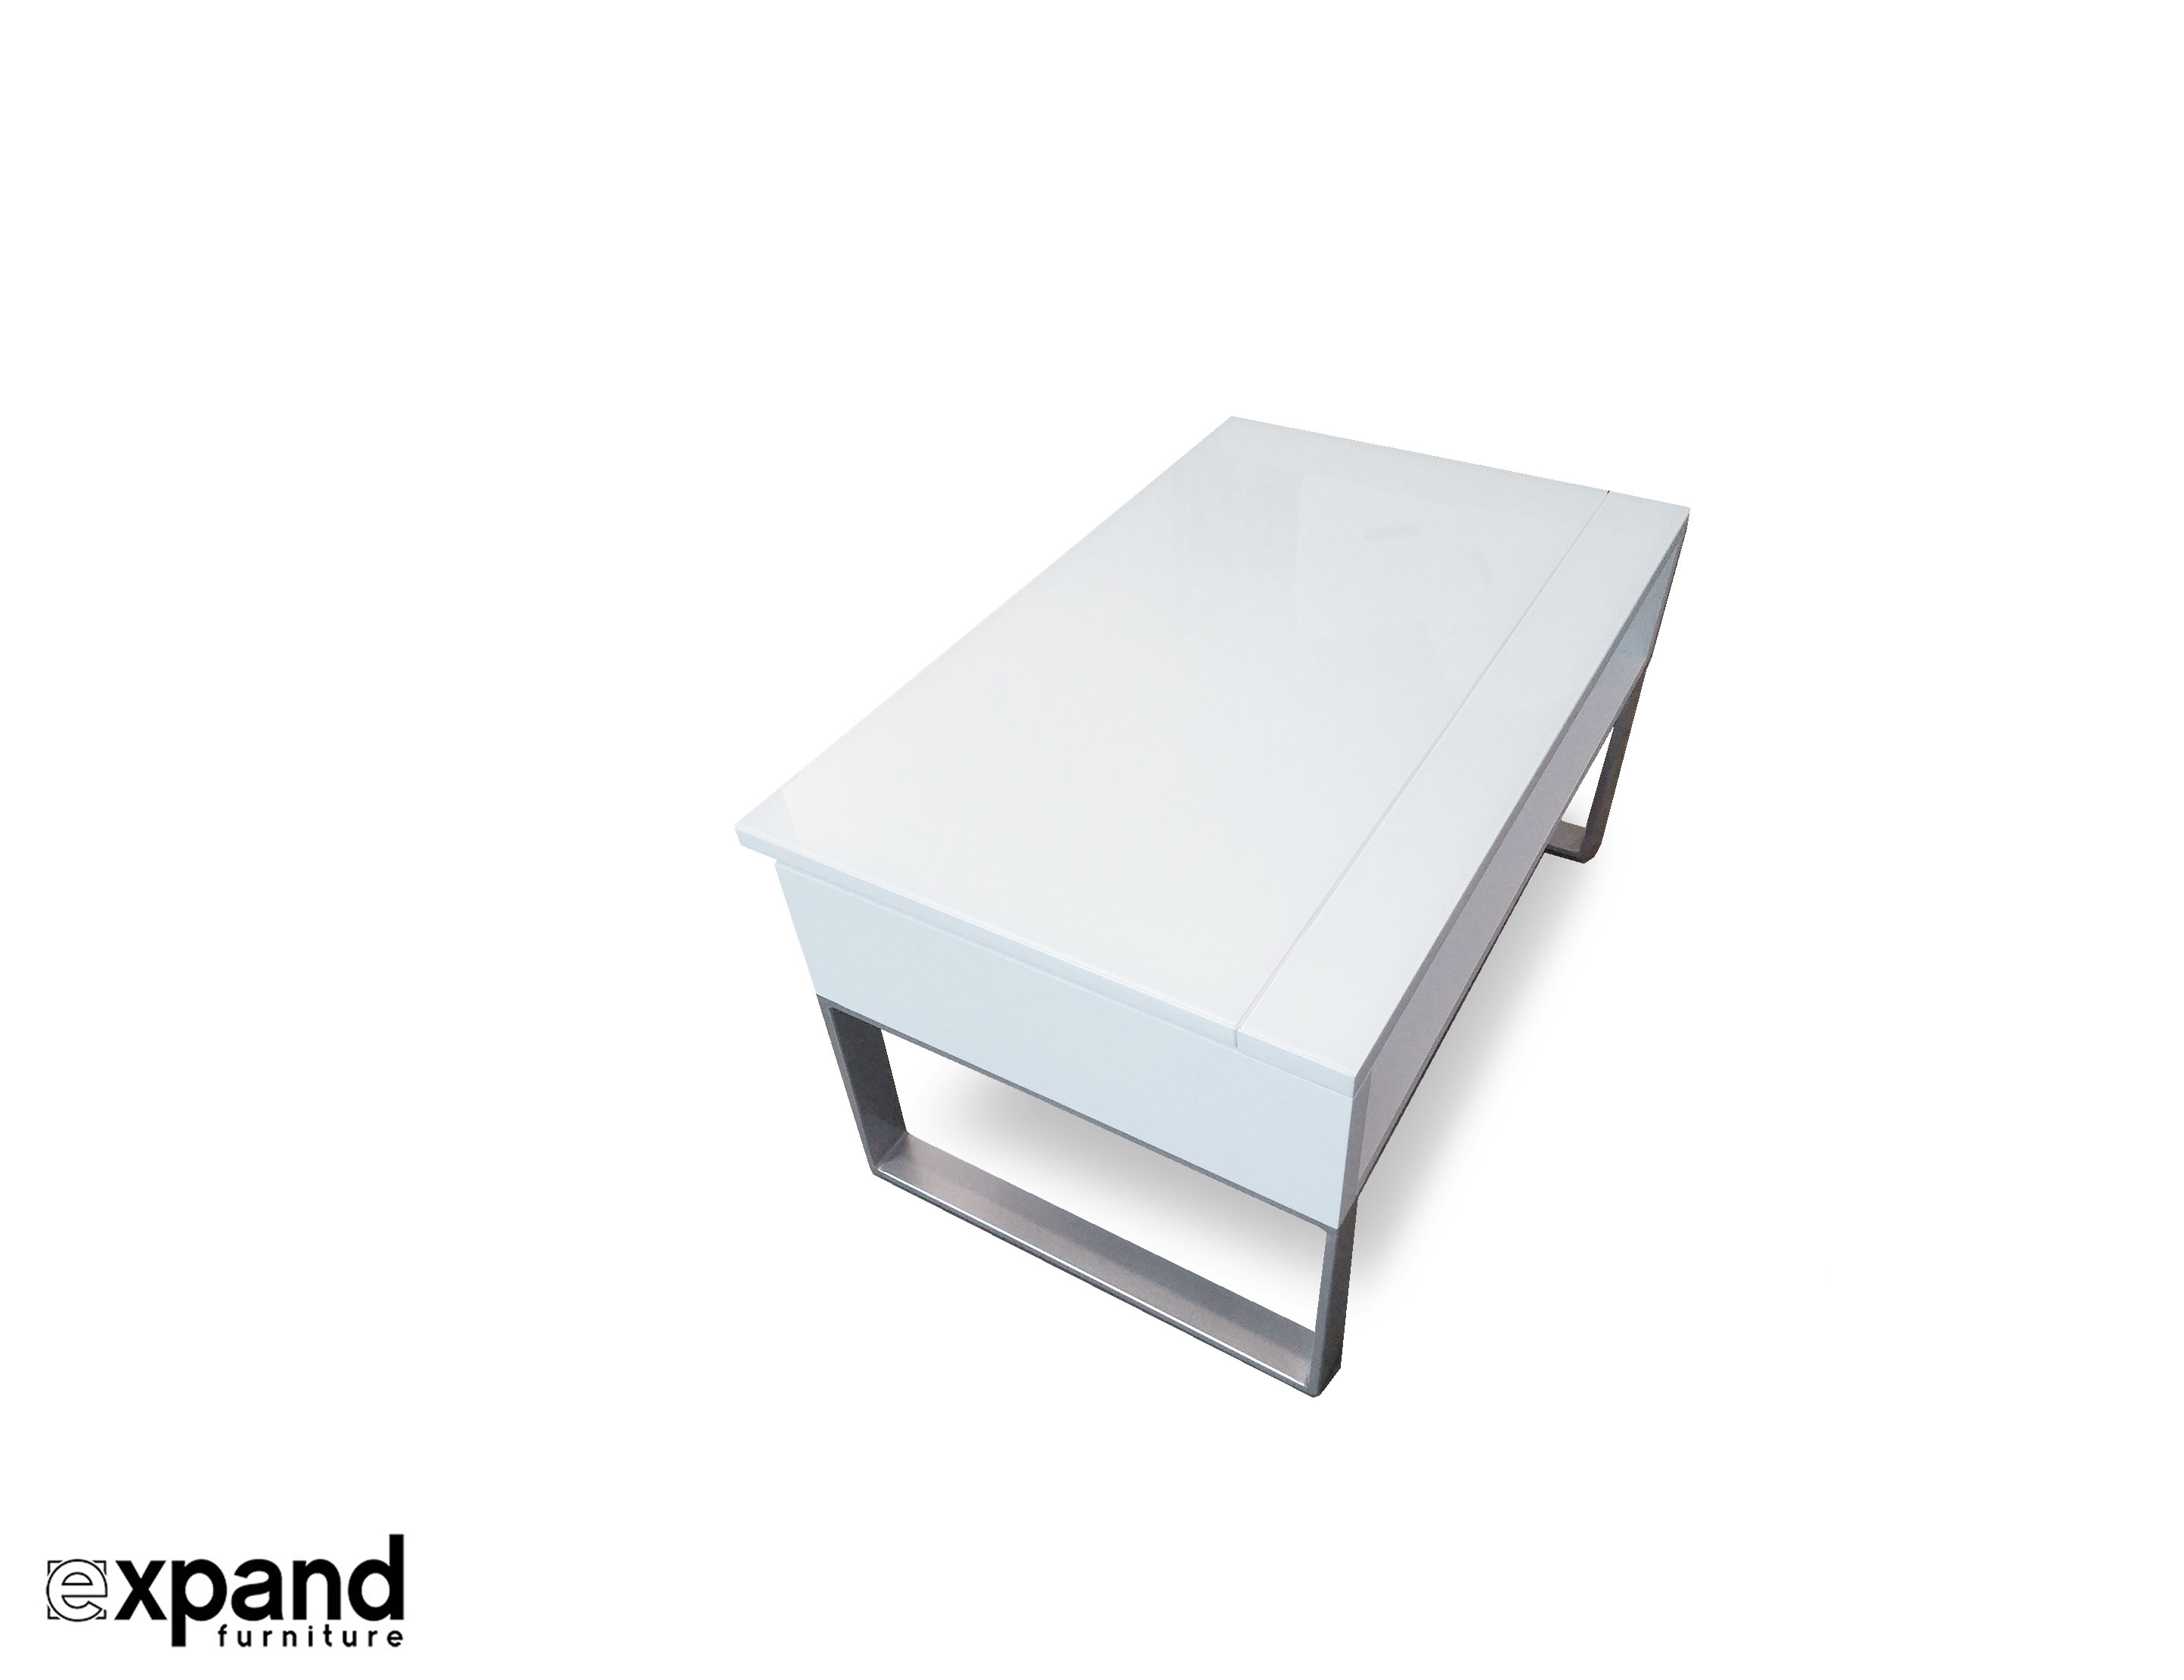 The Mini Boost Small Lifting Coffee Table Expand Furniture Folding Tables Smarter Wall